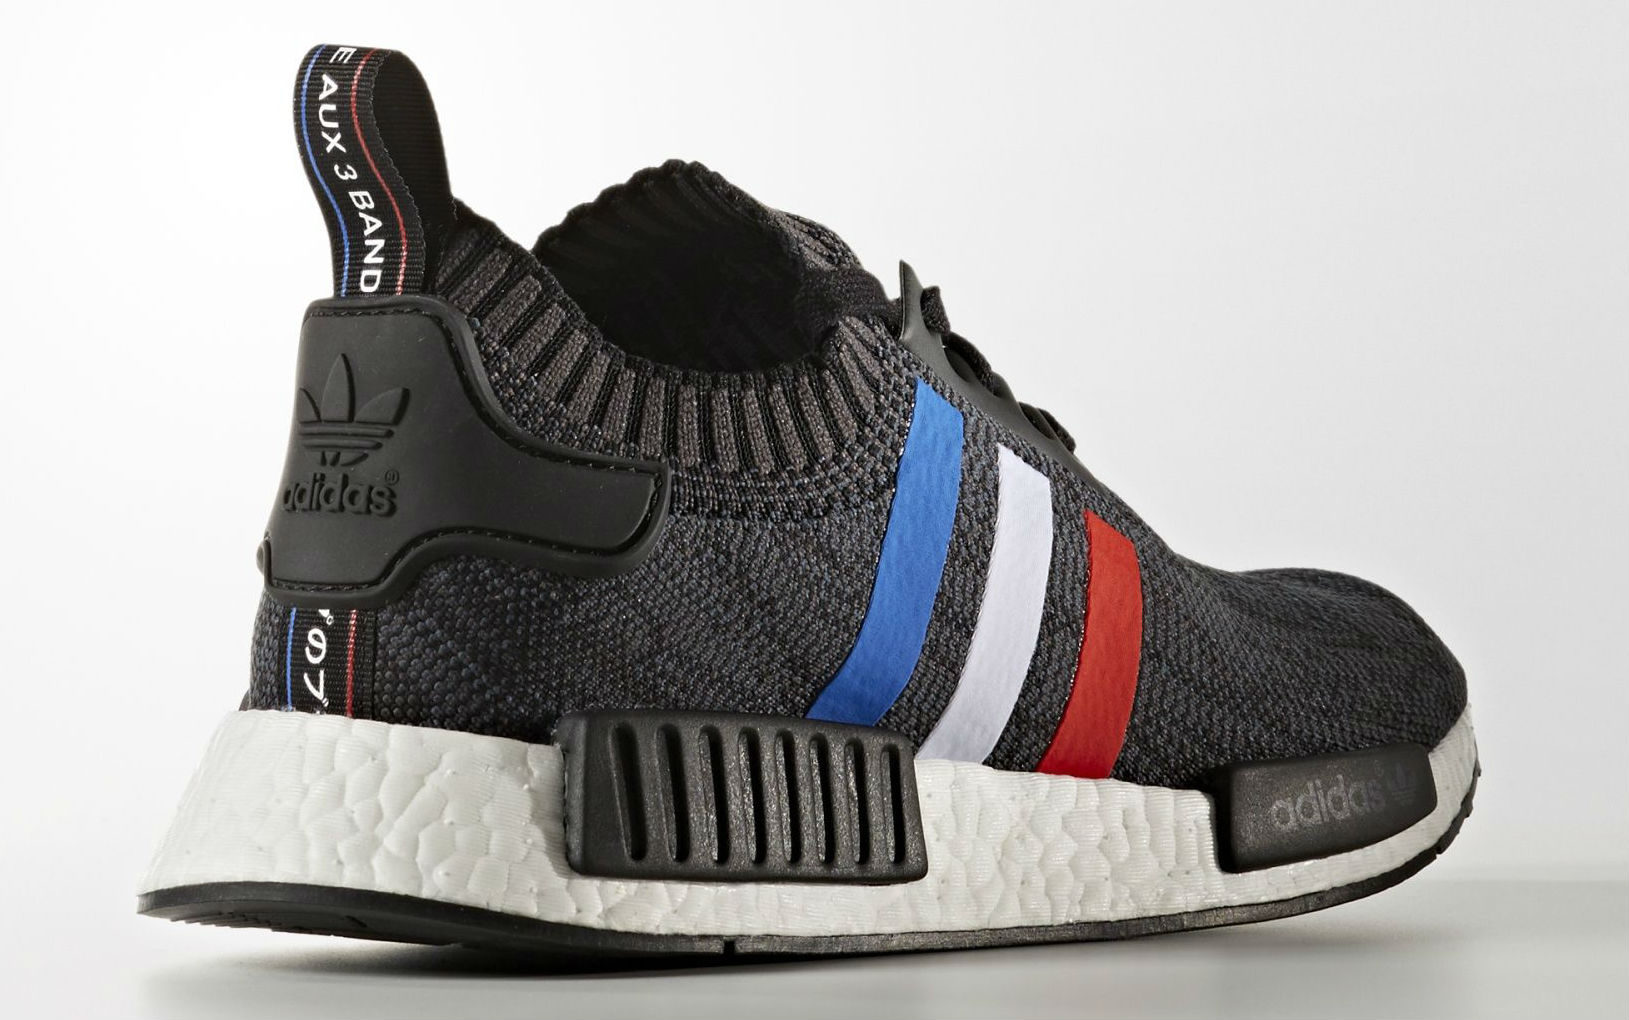 adidas NMD Primeknit Red, White & Blue Stripes | Sole Collector